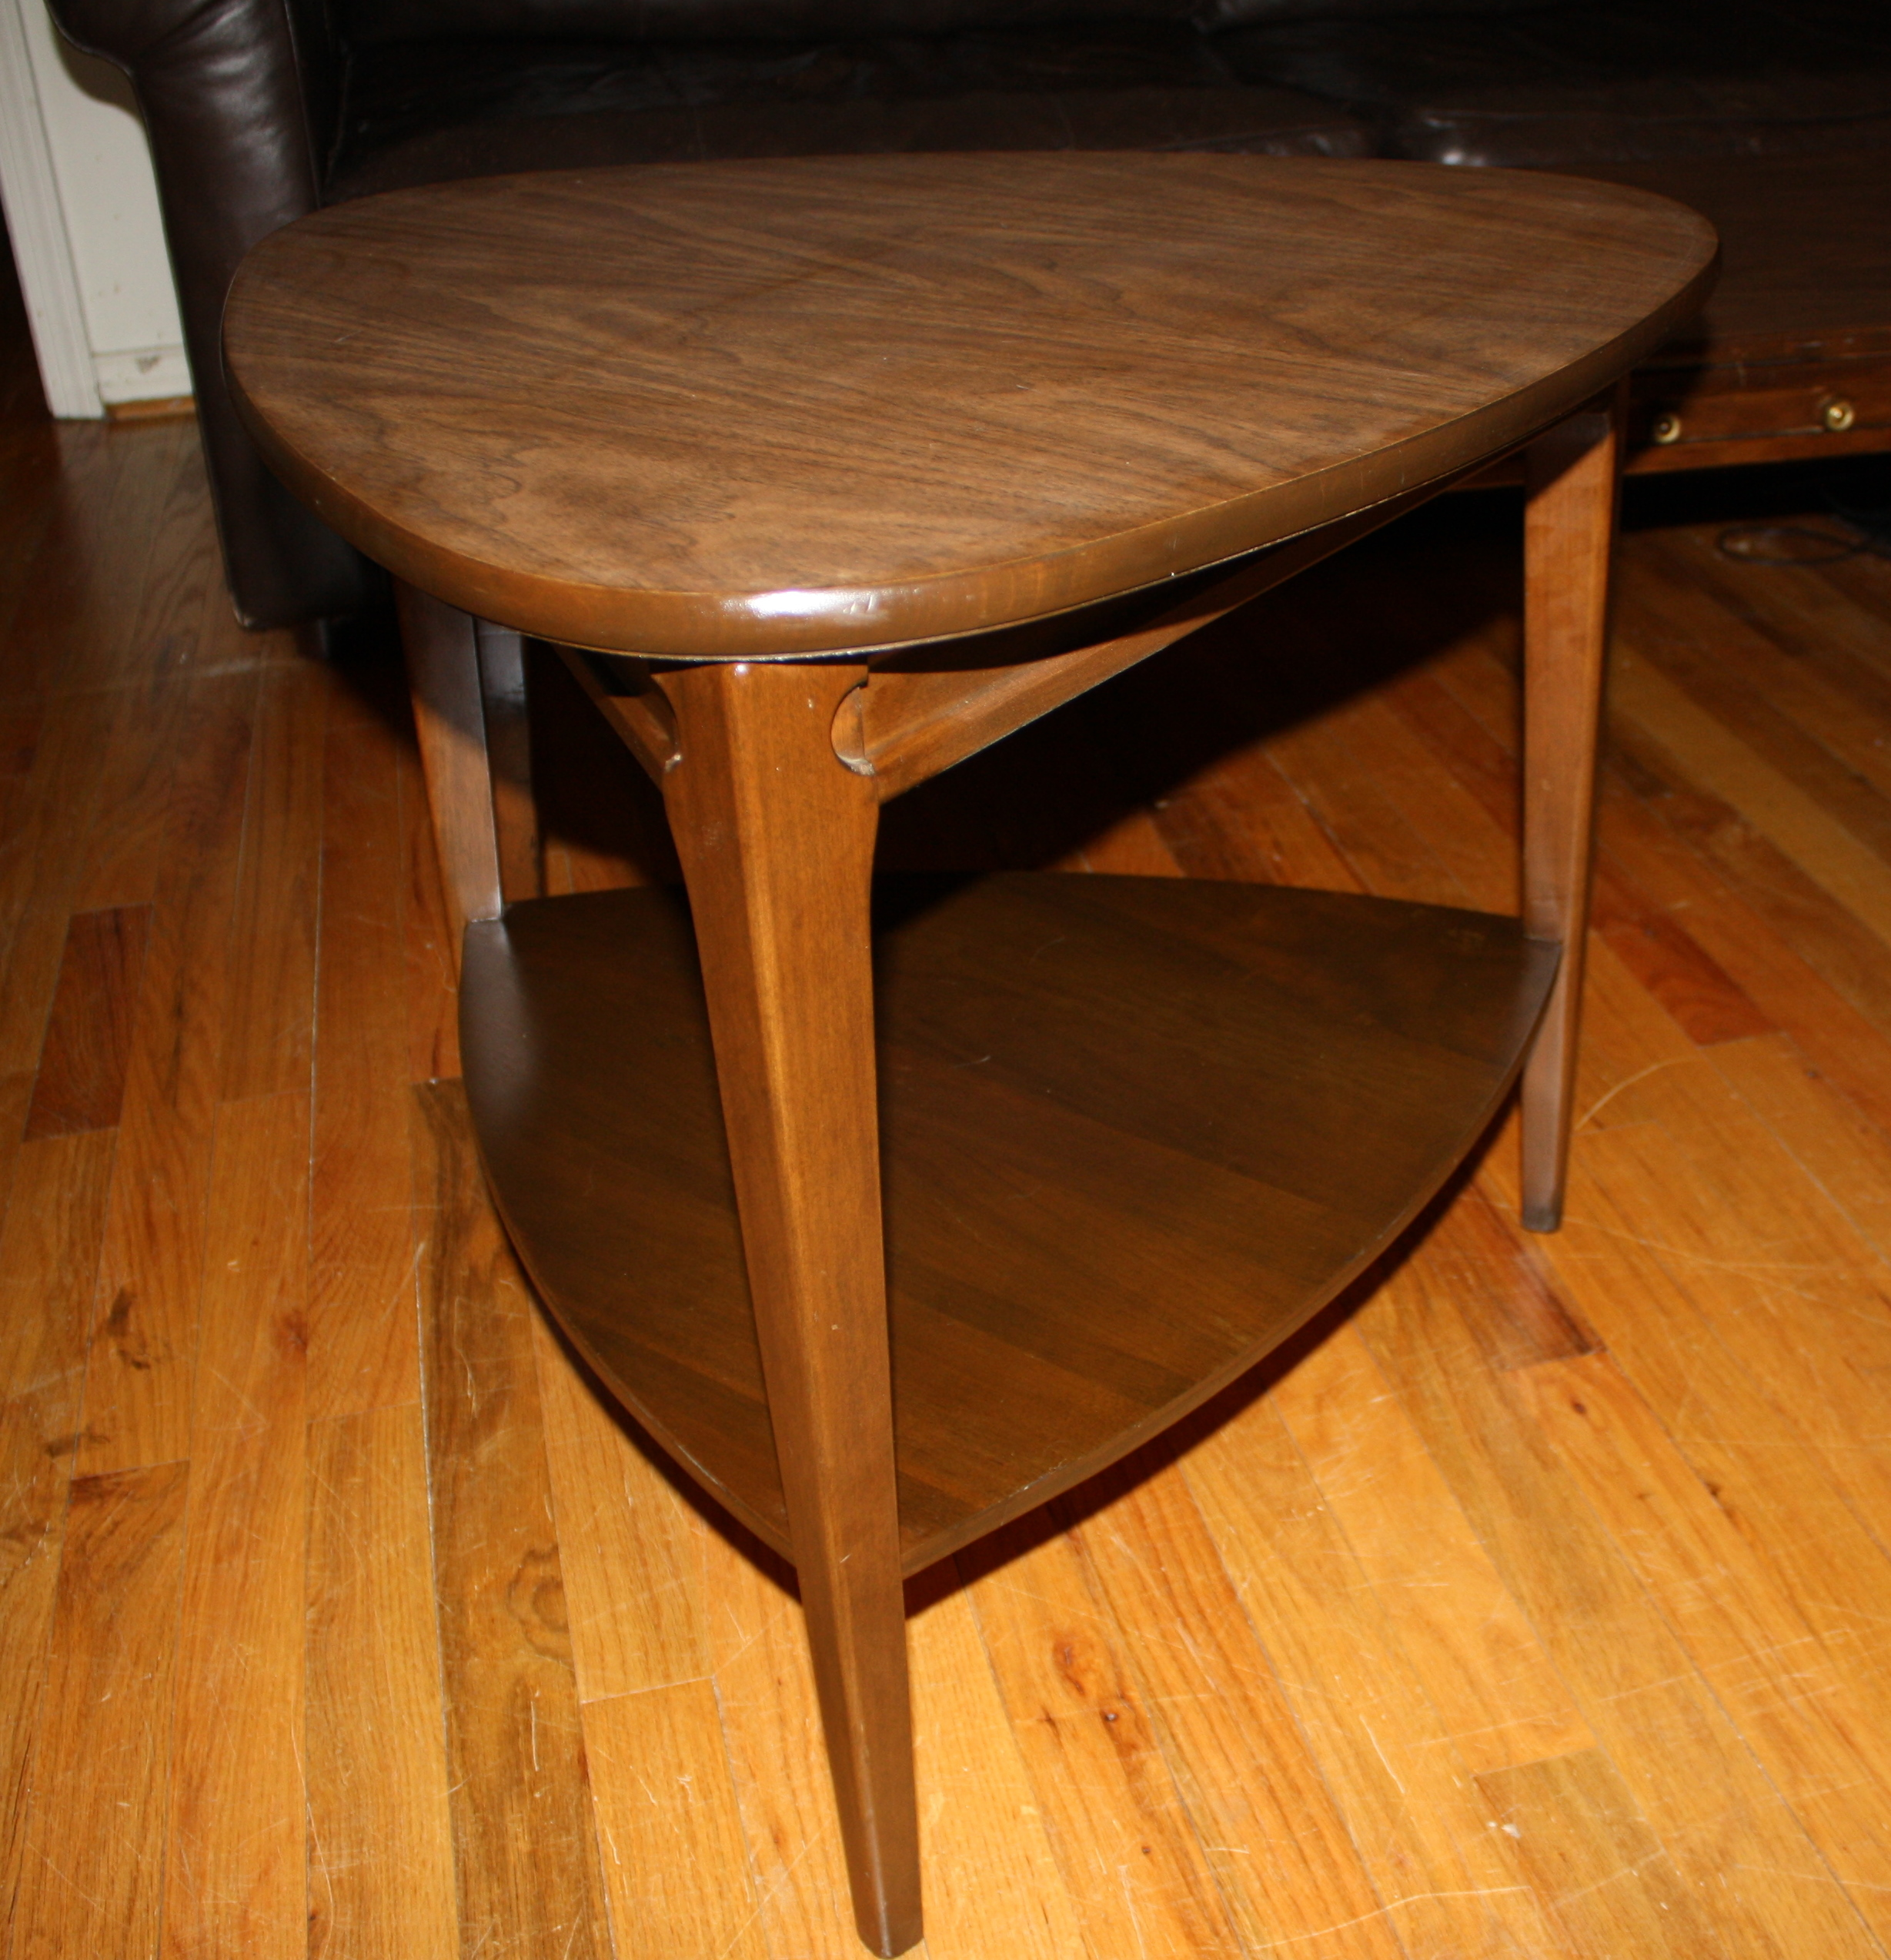 Mid Century Modern Coffee Table and Triangle Side Table by Mersman